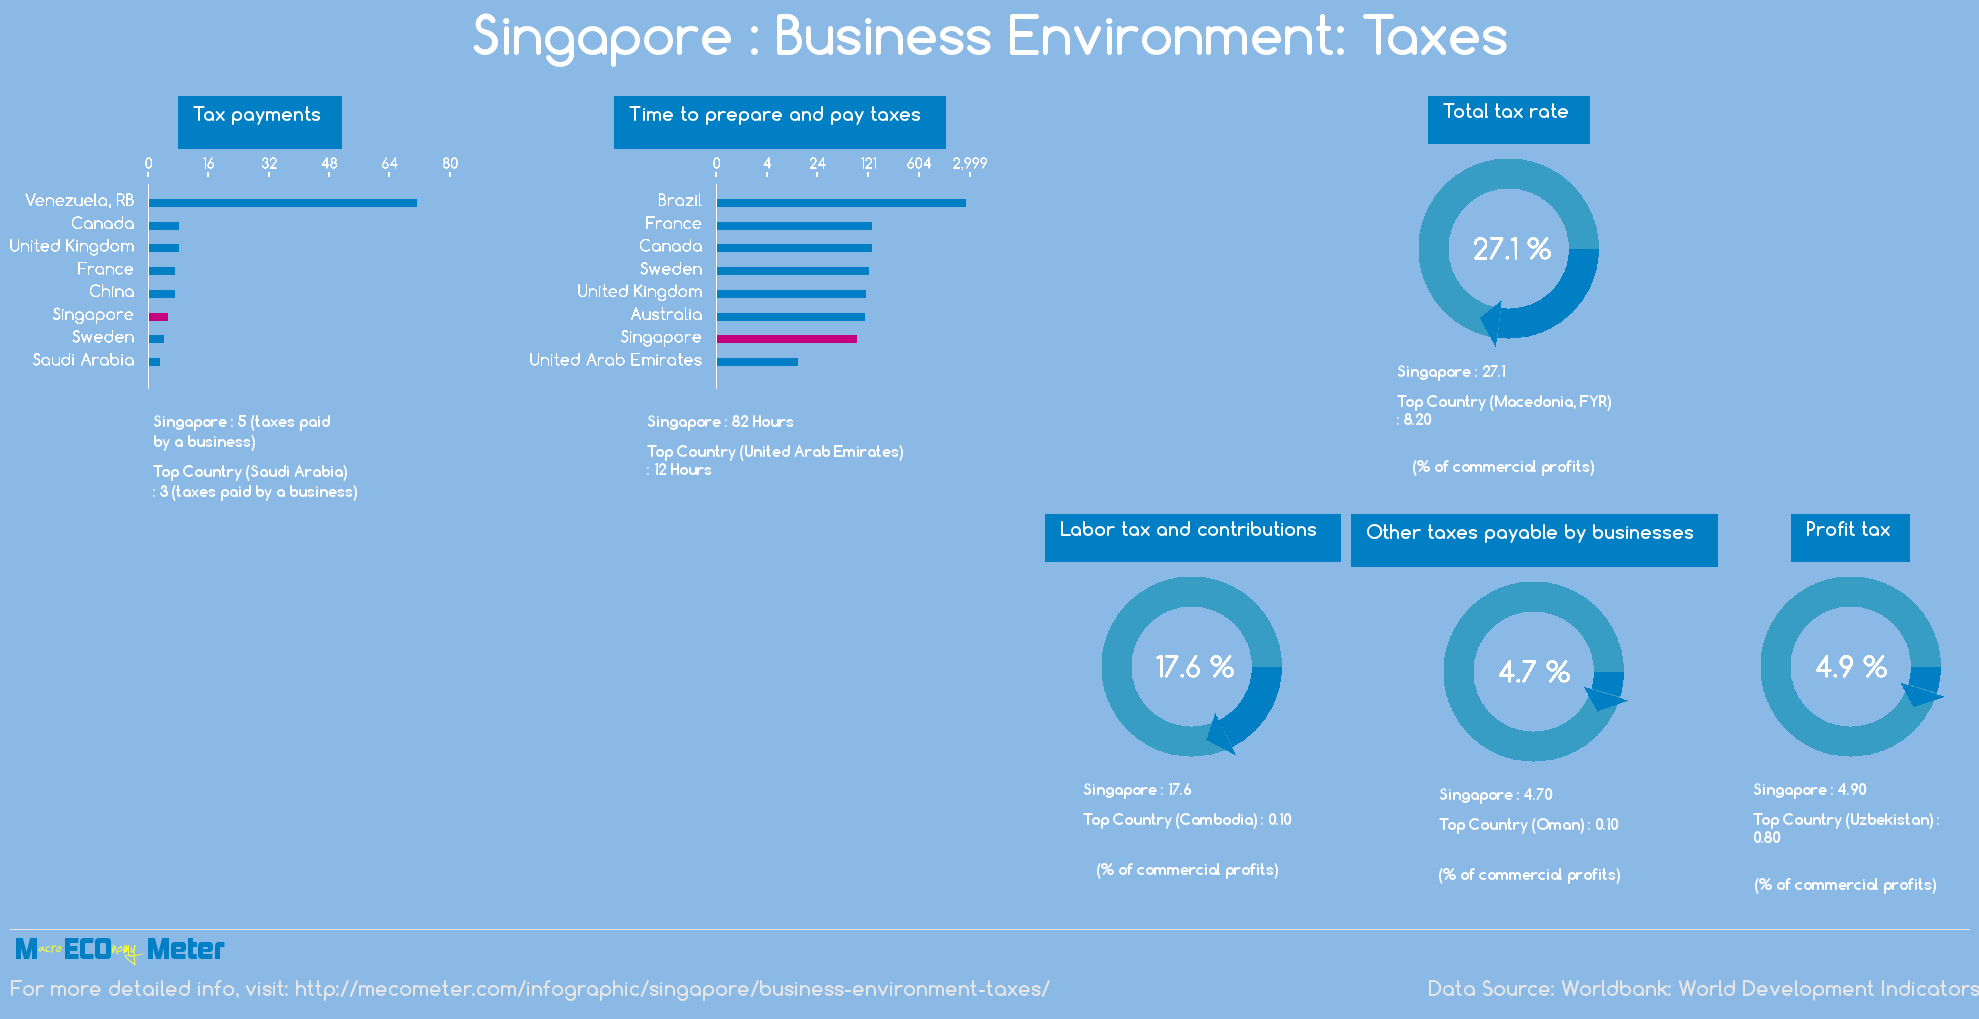 Singapore : Business Environment: Taxes